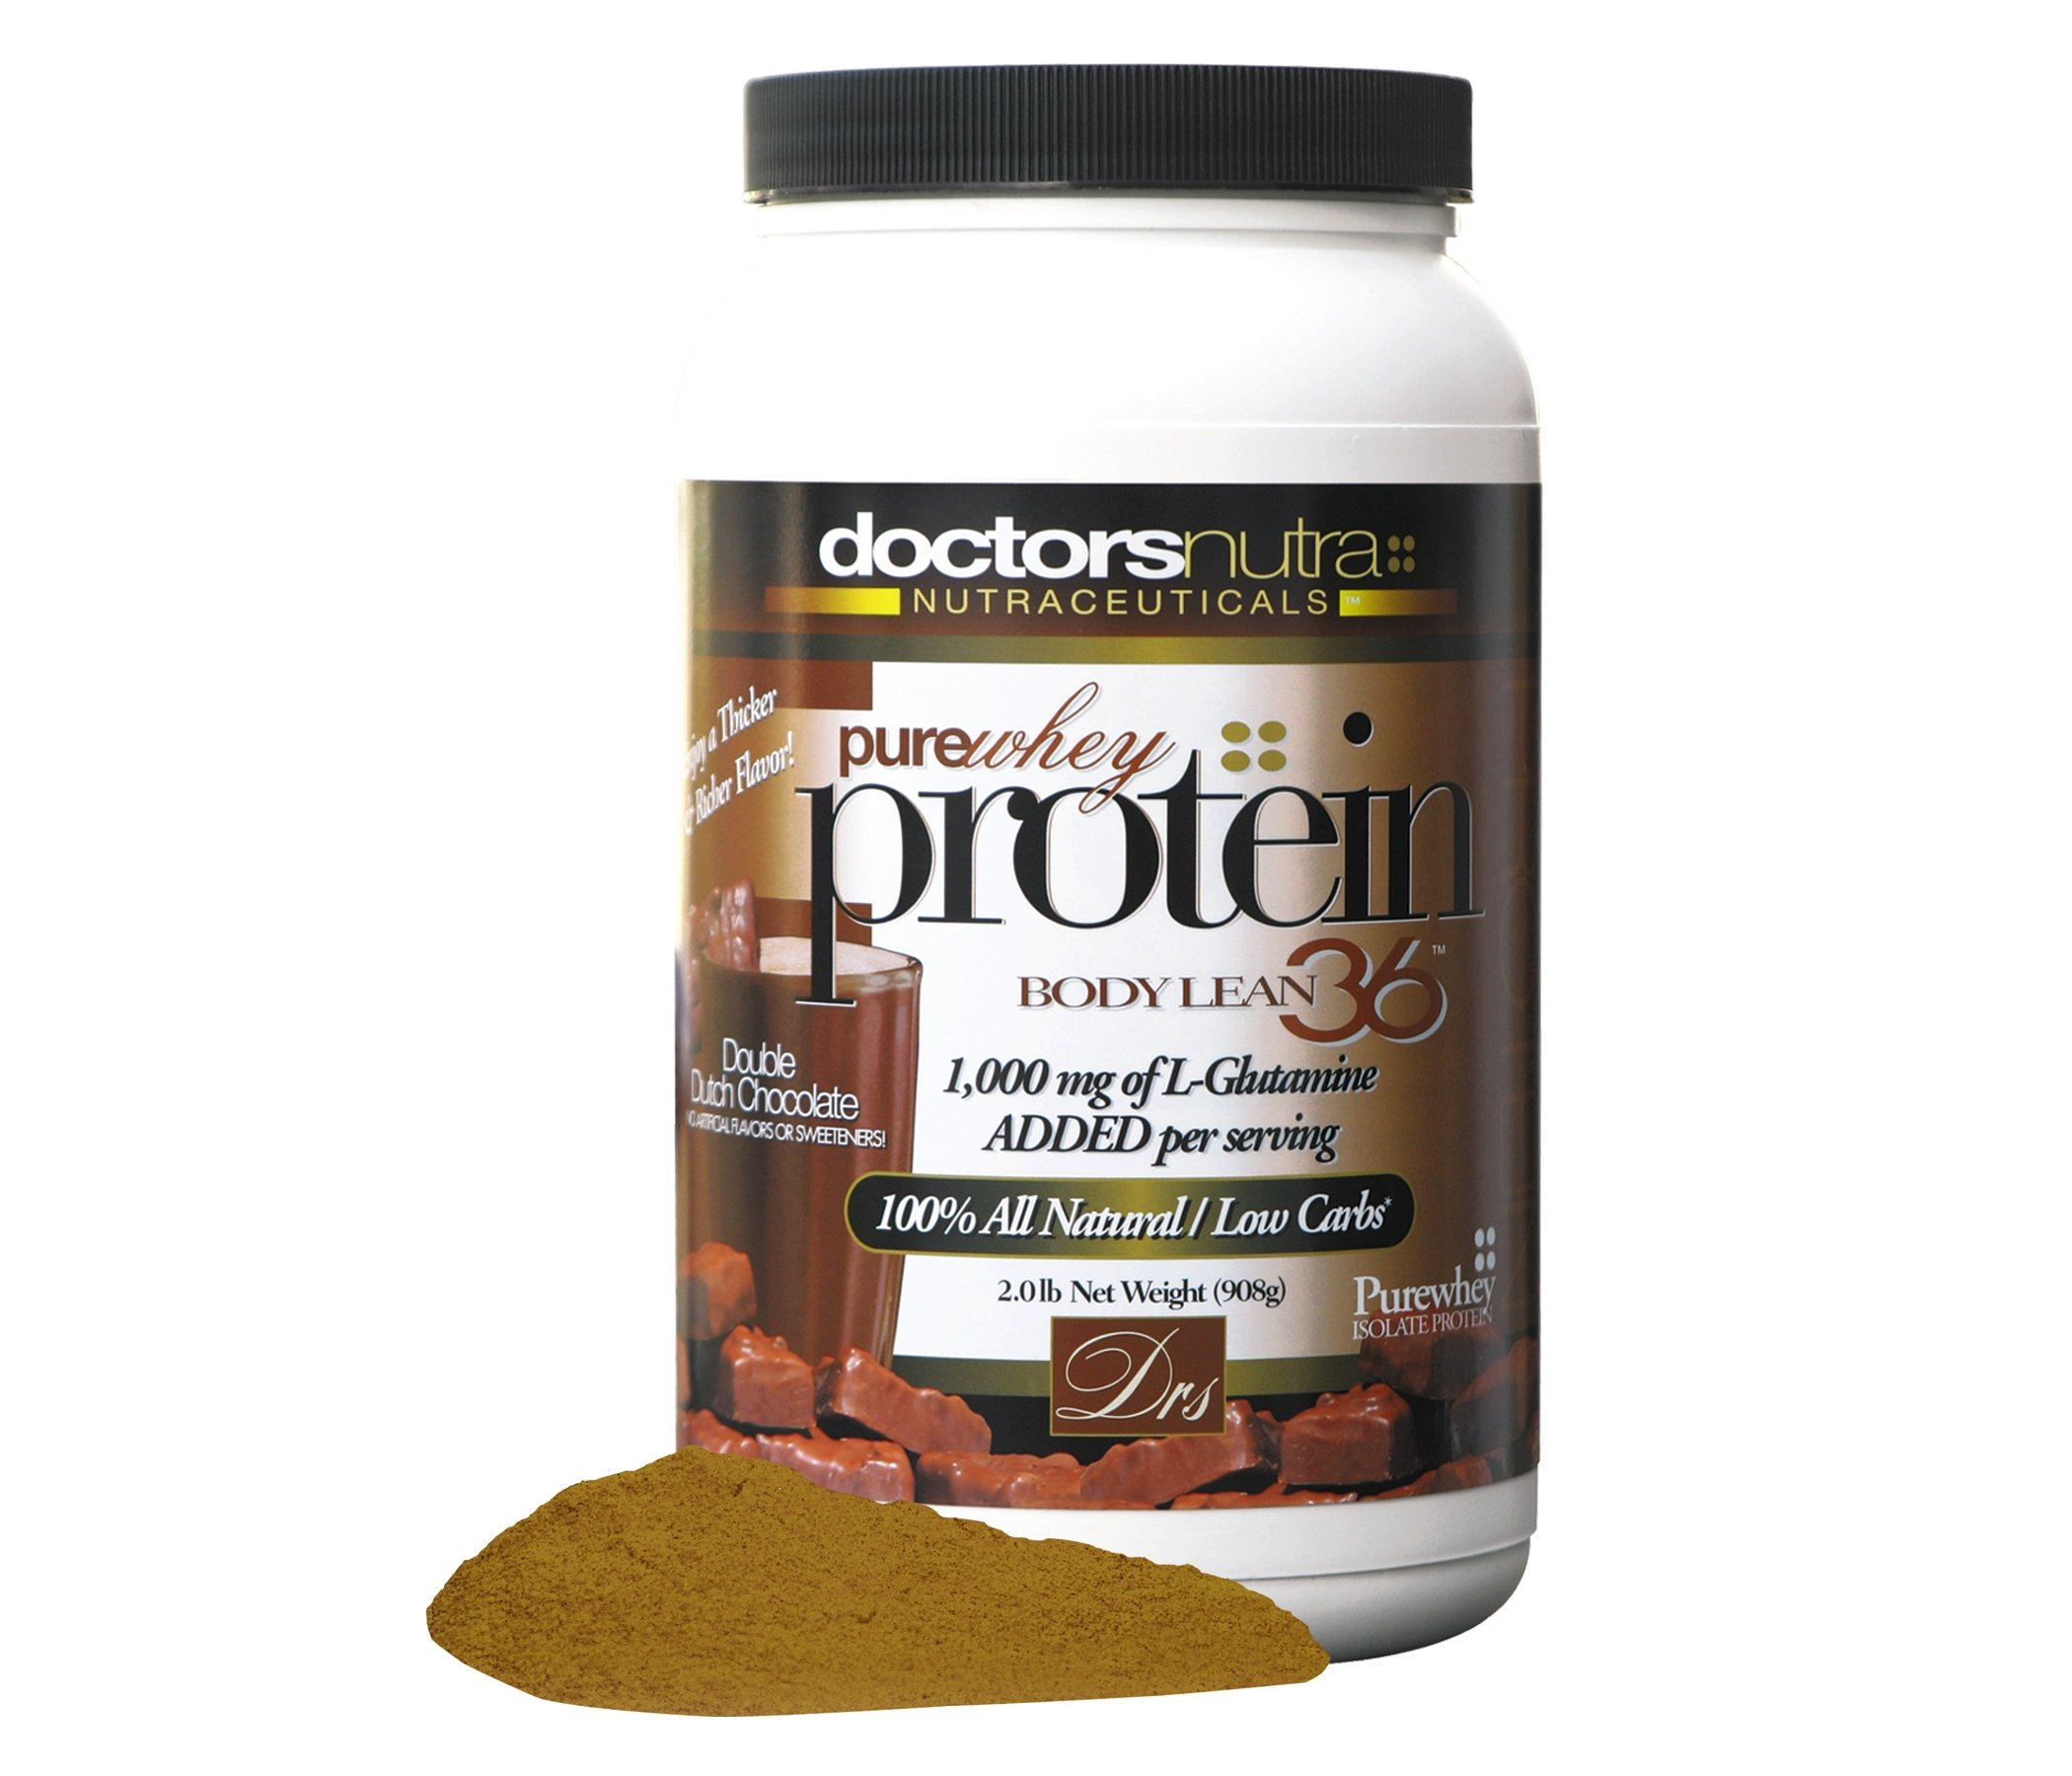 Pure 100 Percent Undenatured Grass Fed Whey Protein by Doctors Nutra Nutraceuticals, Low Carb Low Fat, Double Dutch Chocolate Flavor, Natural Ultrafiltered Plus 1000 Milligrams L-Glutamine, 2 Pounds by Doctors Nutra Nutraceuticals